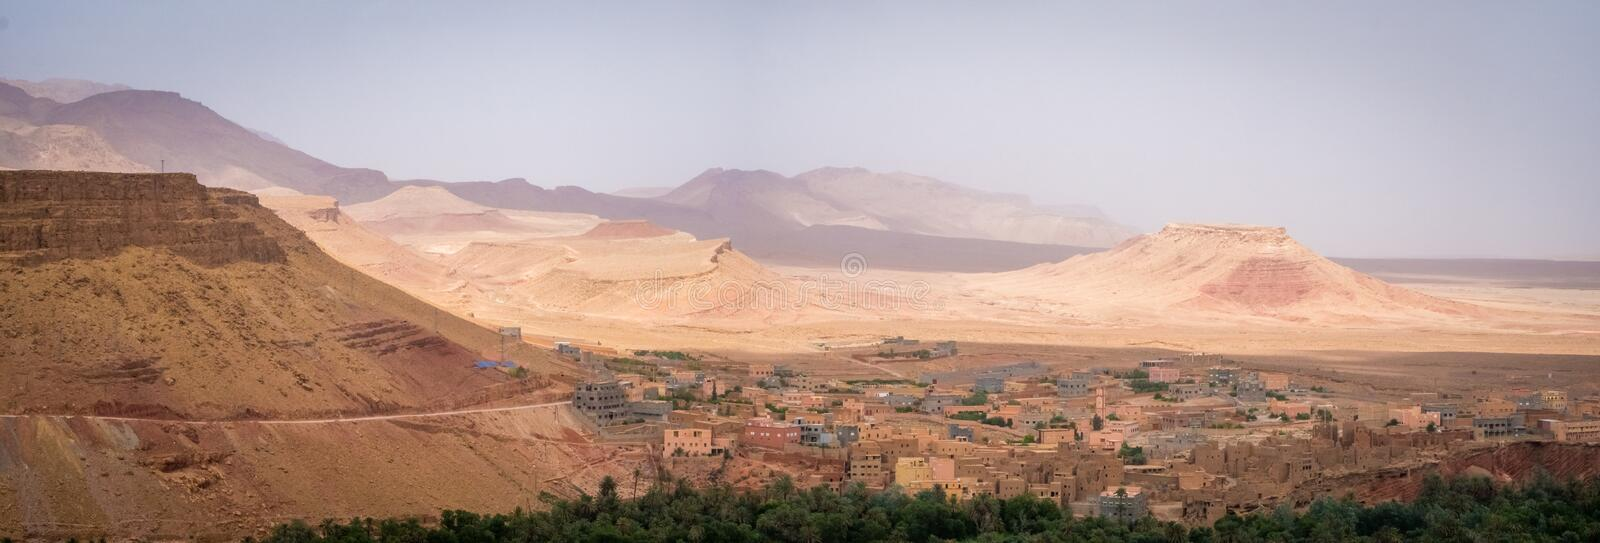 Panoramic high angle view of the old historical abandoned Kasbah city in Morocco. A panoramic high angle view of the old historical abandoned Kasbah city in stock photography